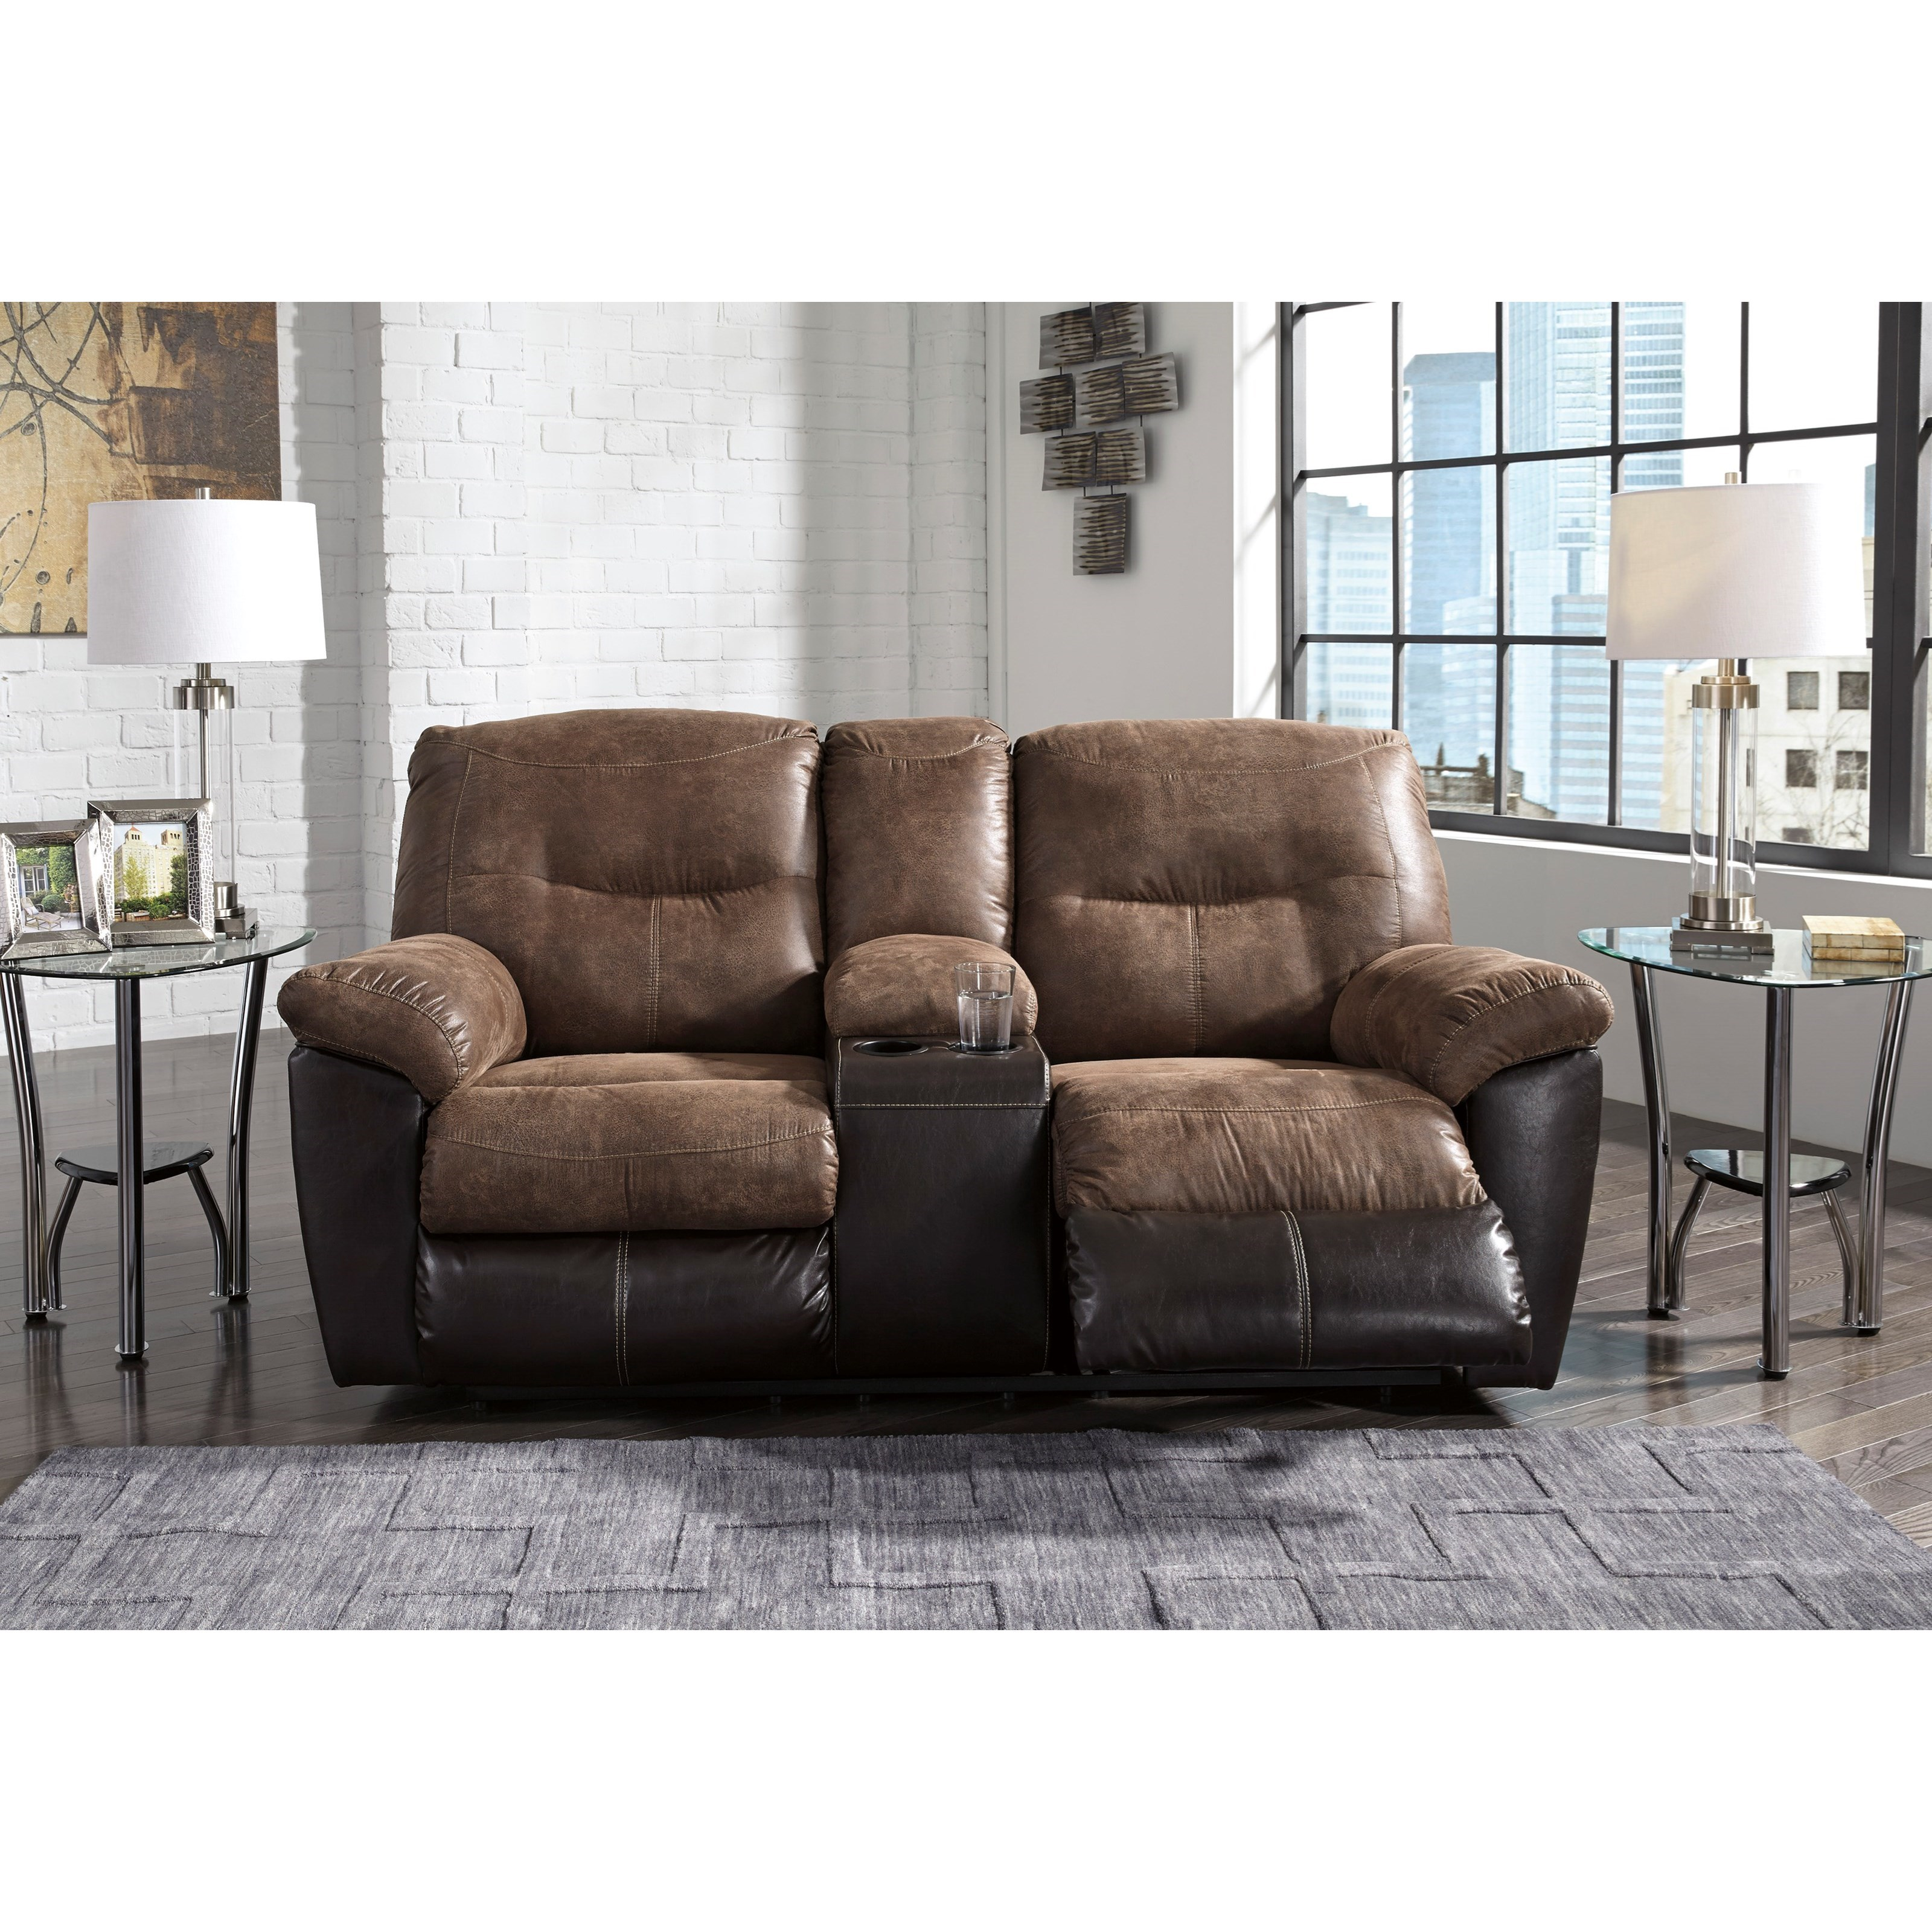 Ashley signature design follett two tone faux leather double reclining loveseat w console for Living room with two recliners